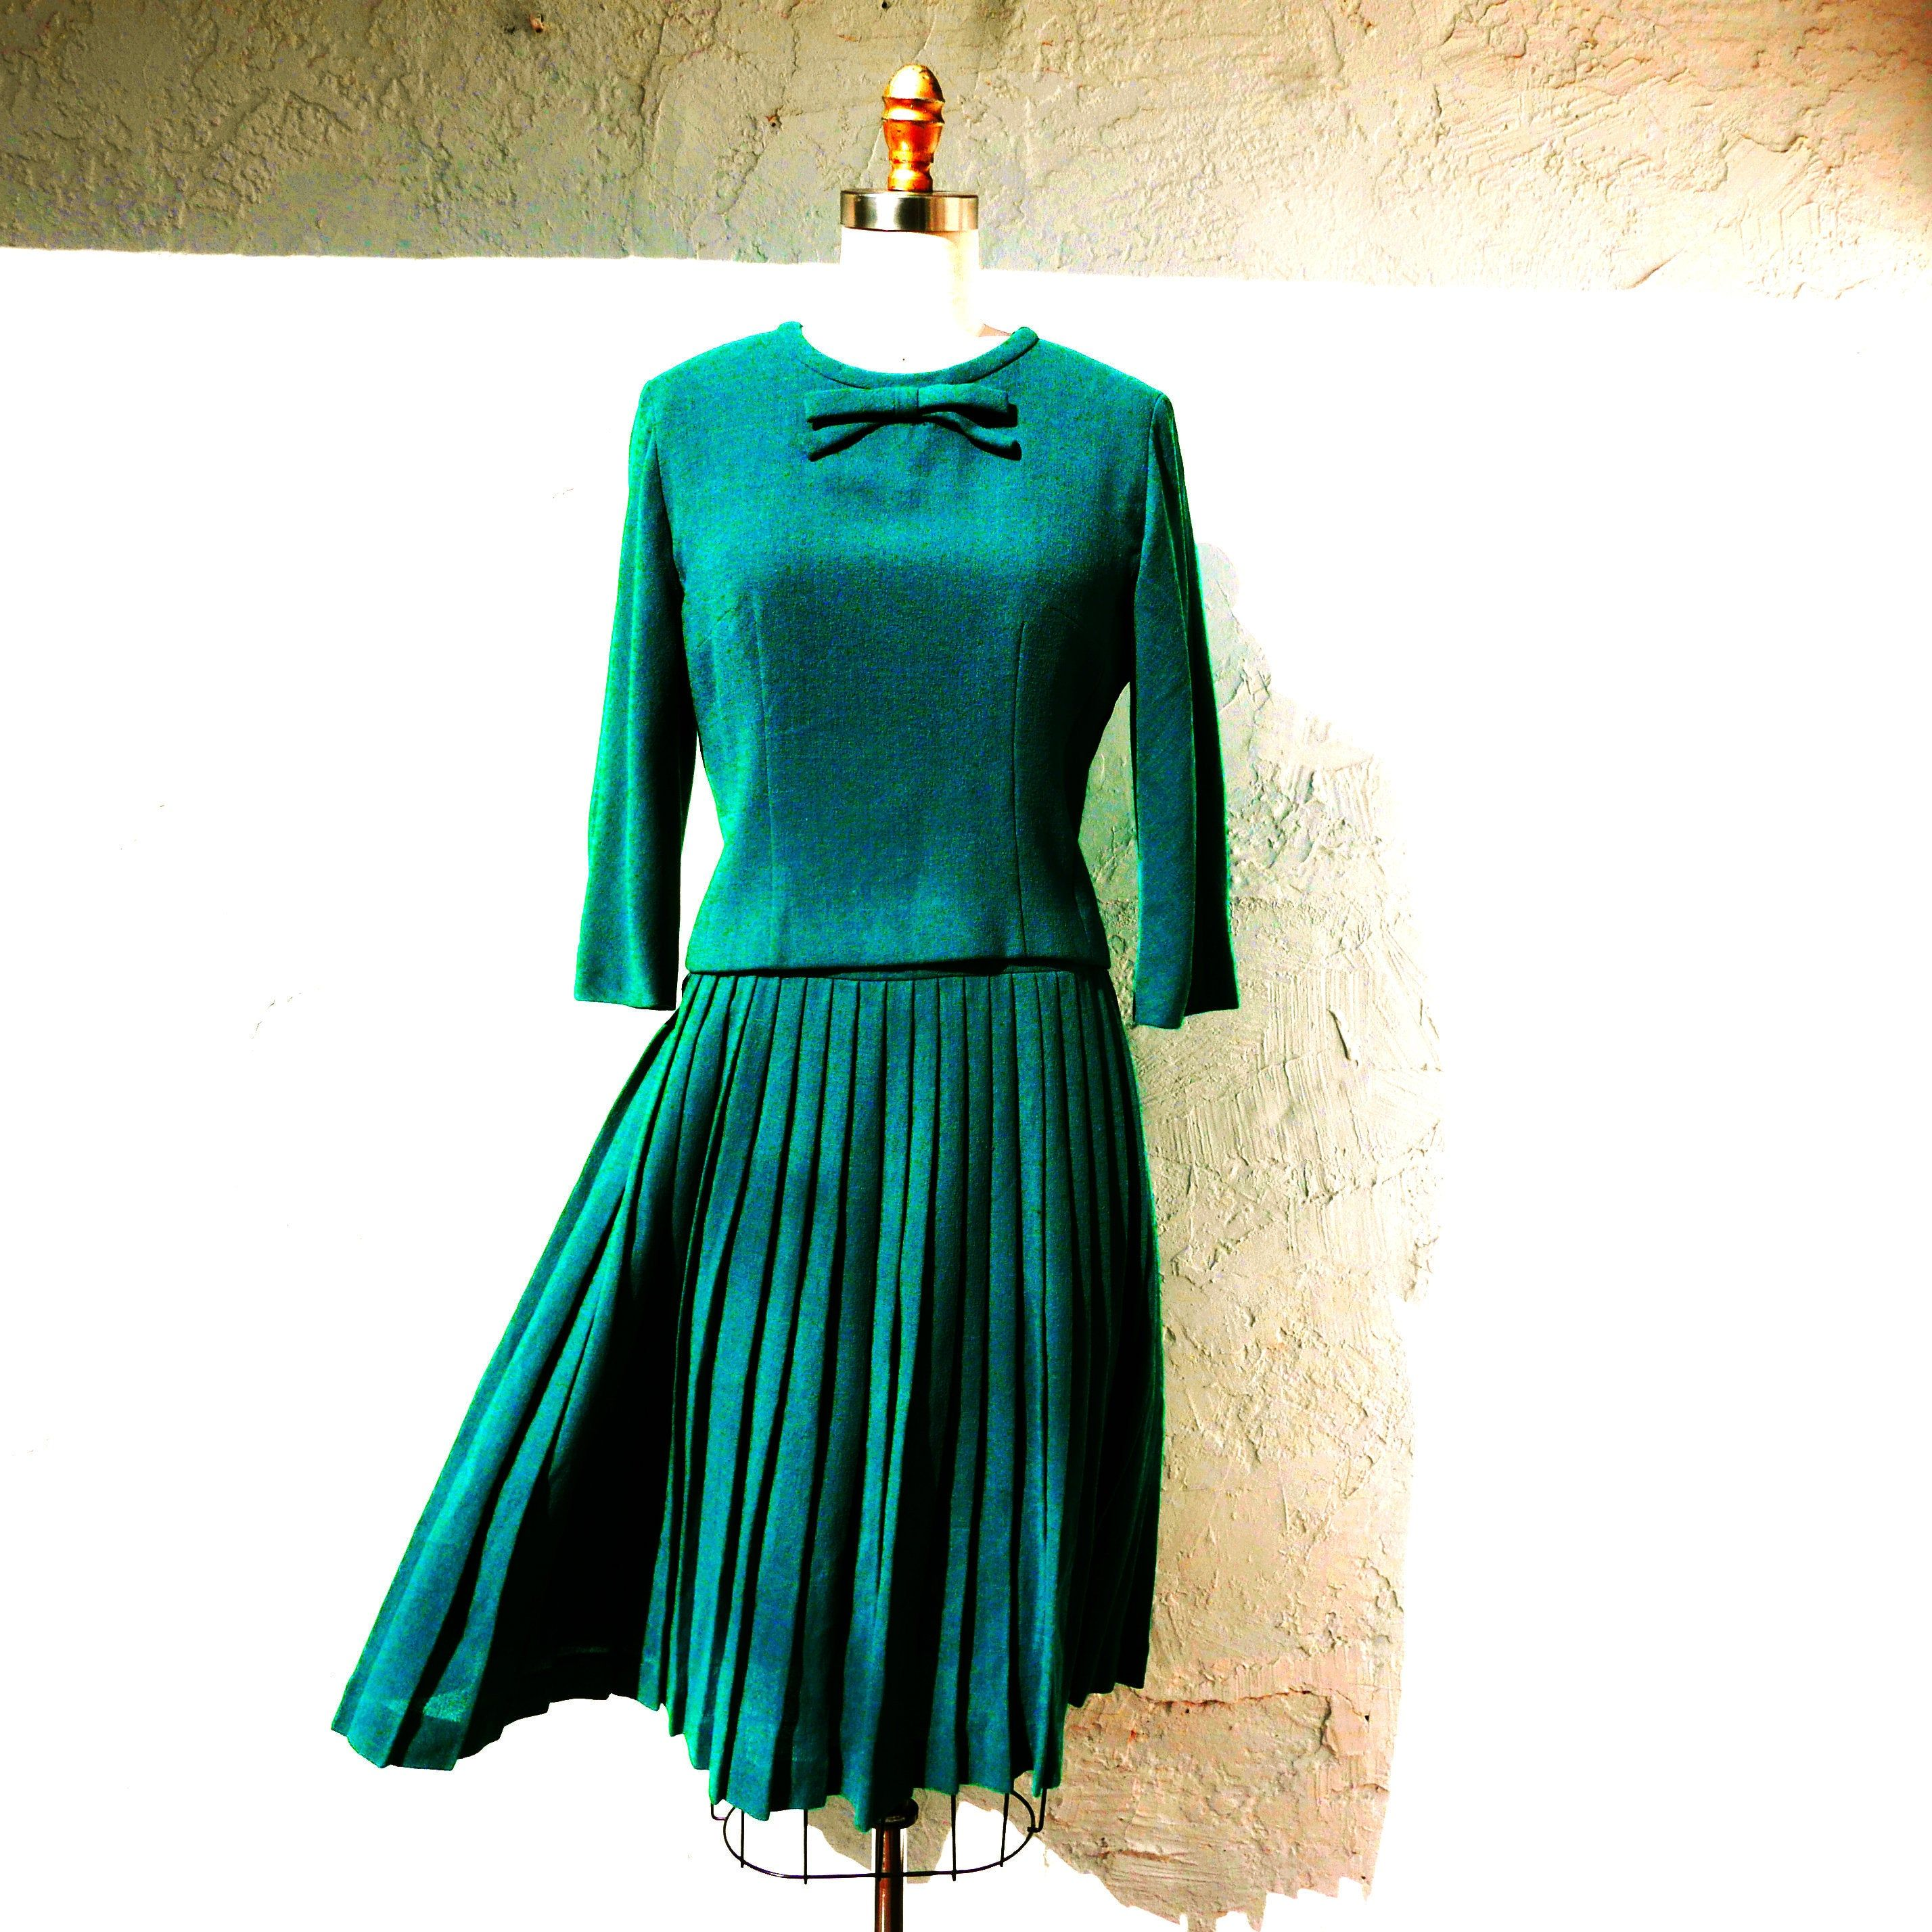 Lovely Vintage 50s 60s Turquoise Pleated Two-Piece Skirt Jacket Set in a Cotton Blend